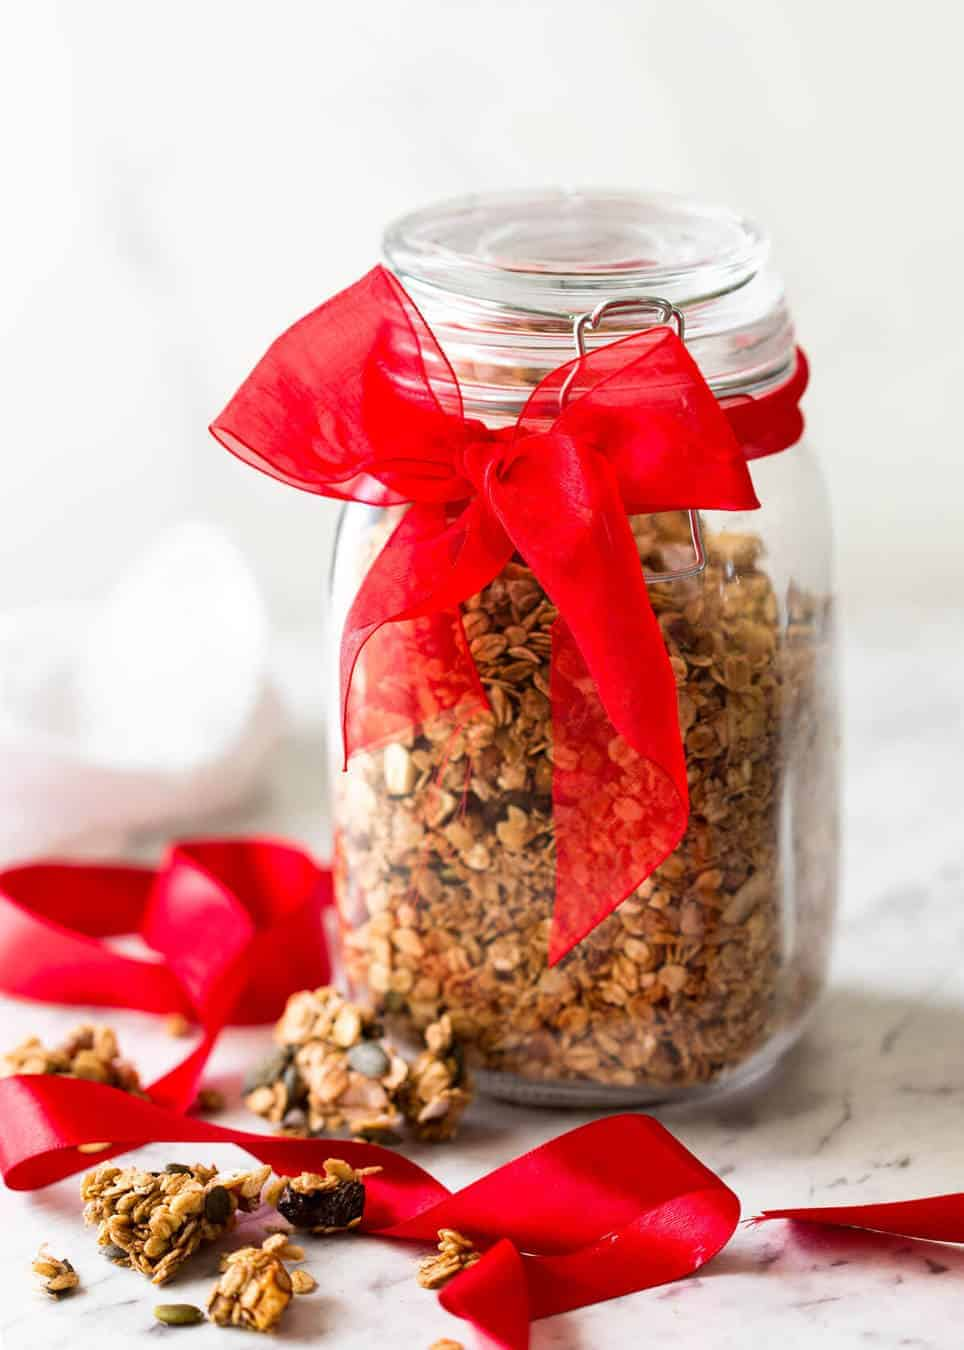 Build Your Own - Healthy Homemade Granola - Easy Food Gift Idea www.recipetineats.com